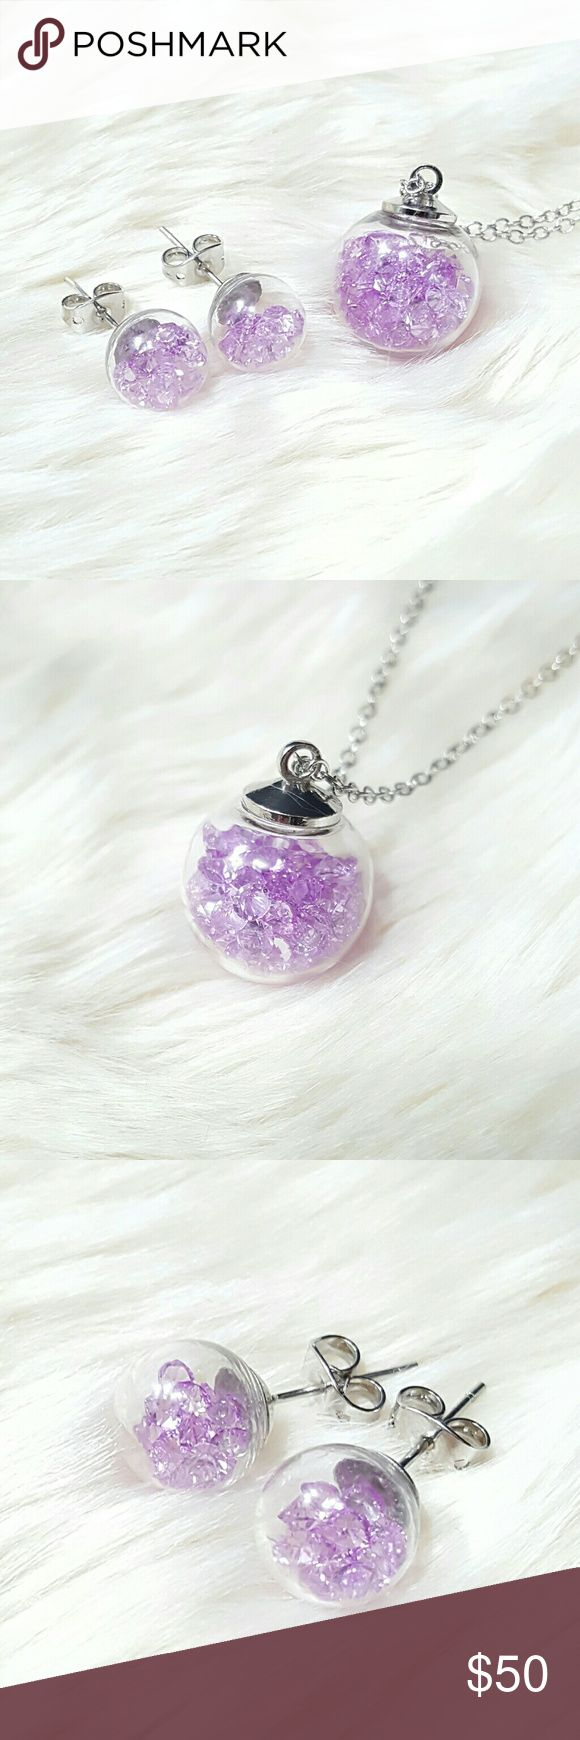 """⤵⤵Wishing Glass Set Swarovski Purple Crystals Welcome!   One Of The Kind Elegant Gorgeous Beautiful New 18 mm Round Wishing Glass Set w. Swarovski Crystal Elements & Silver Plated Chain   Order Included: 1set x 18mm Round Wishing Glass Set w. Swarovski Elements Crystal & Silver Plated Chain. Lobster Clasp. Chain size approximately 16.5"""" - 18.0""""  Fast Shipping  Free House Gift (limited amt)Shop close Nov  Come visit for great selection of high end handbag accessories, twilly, purse…"""